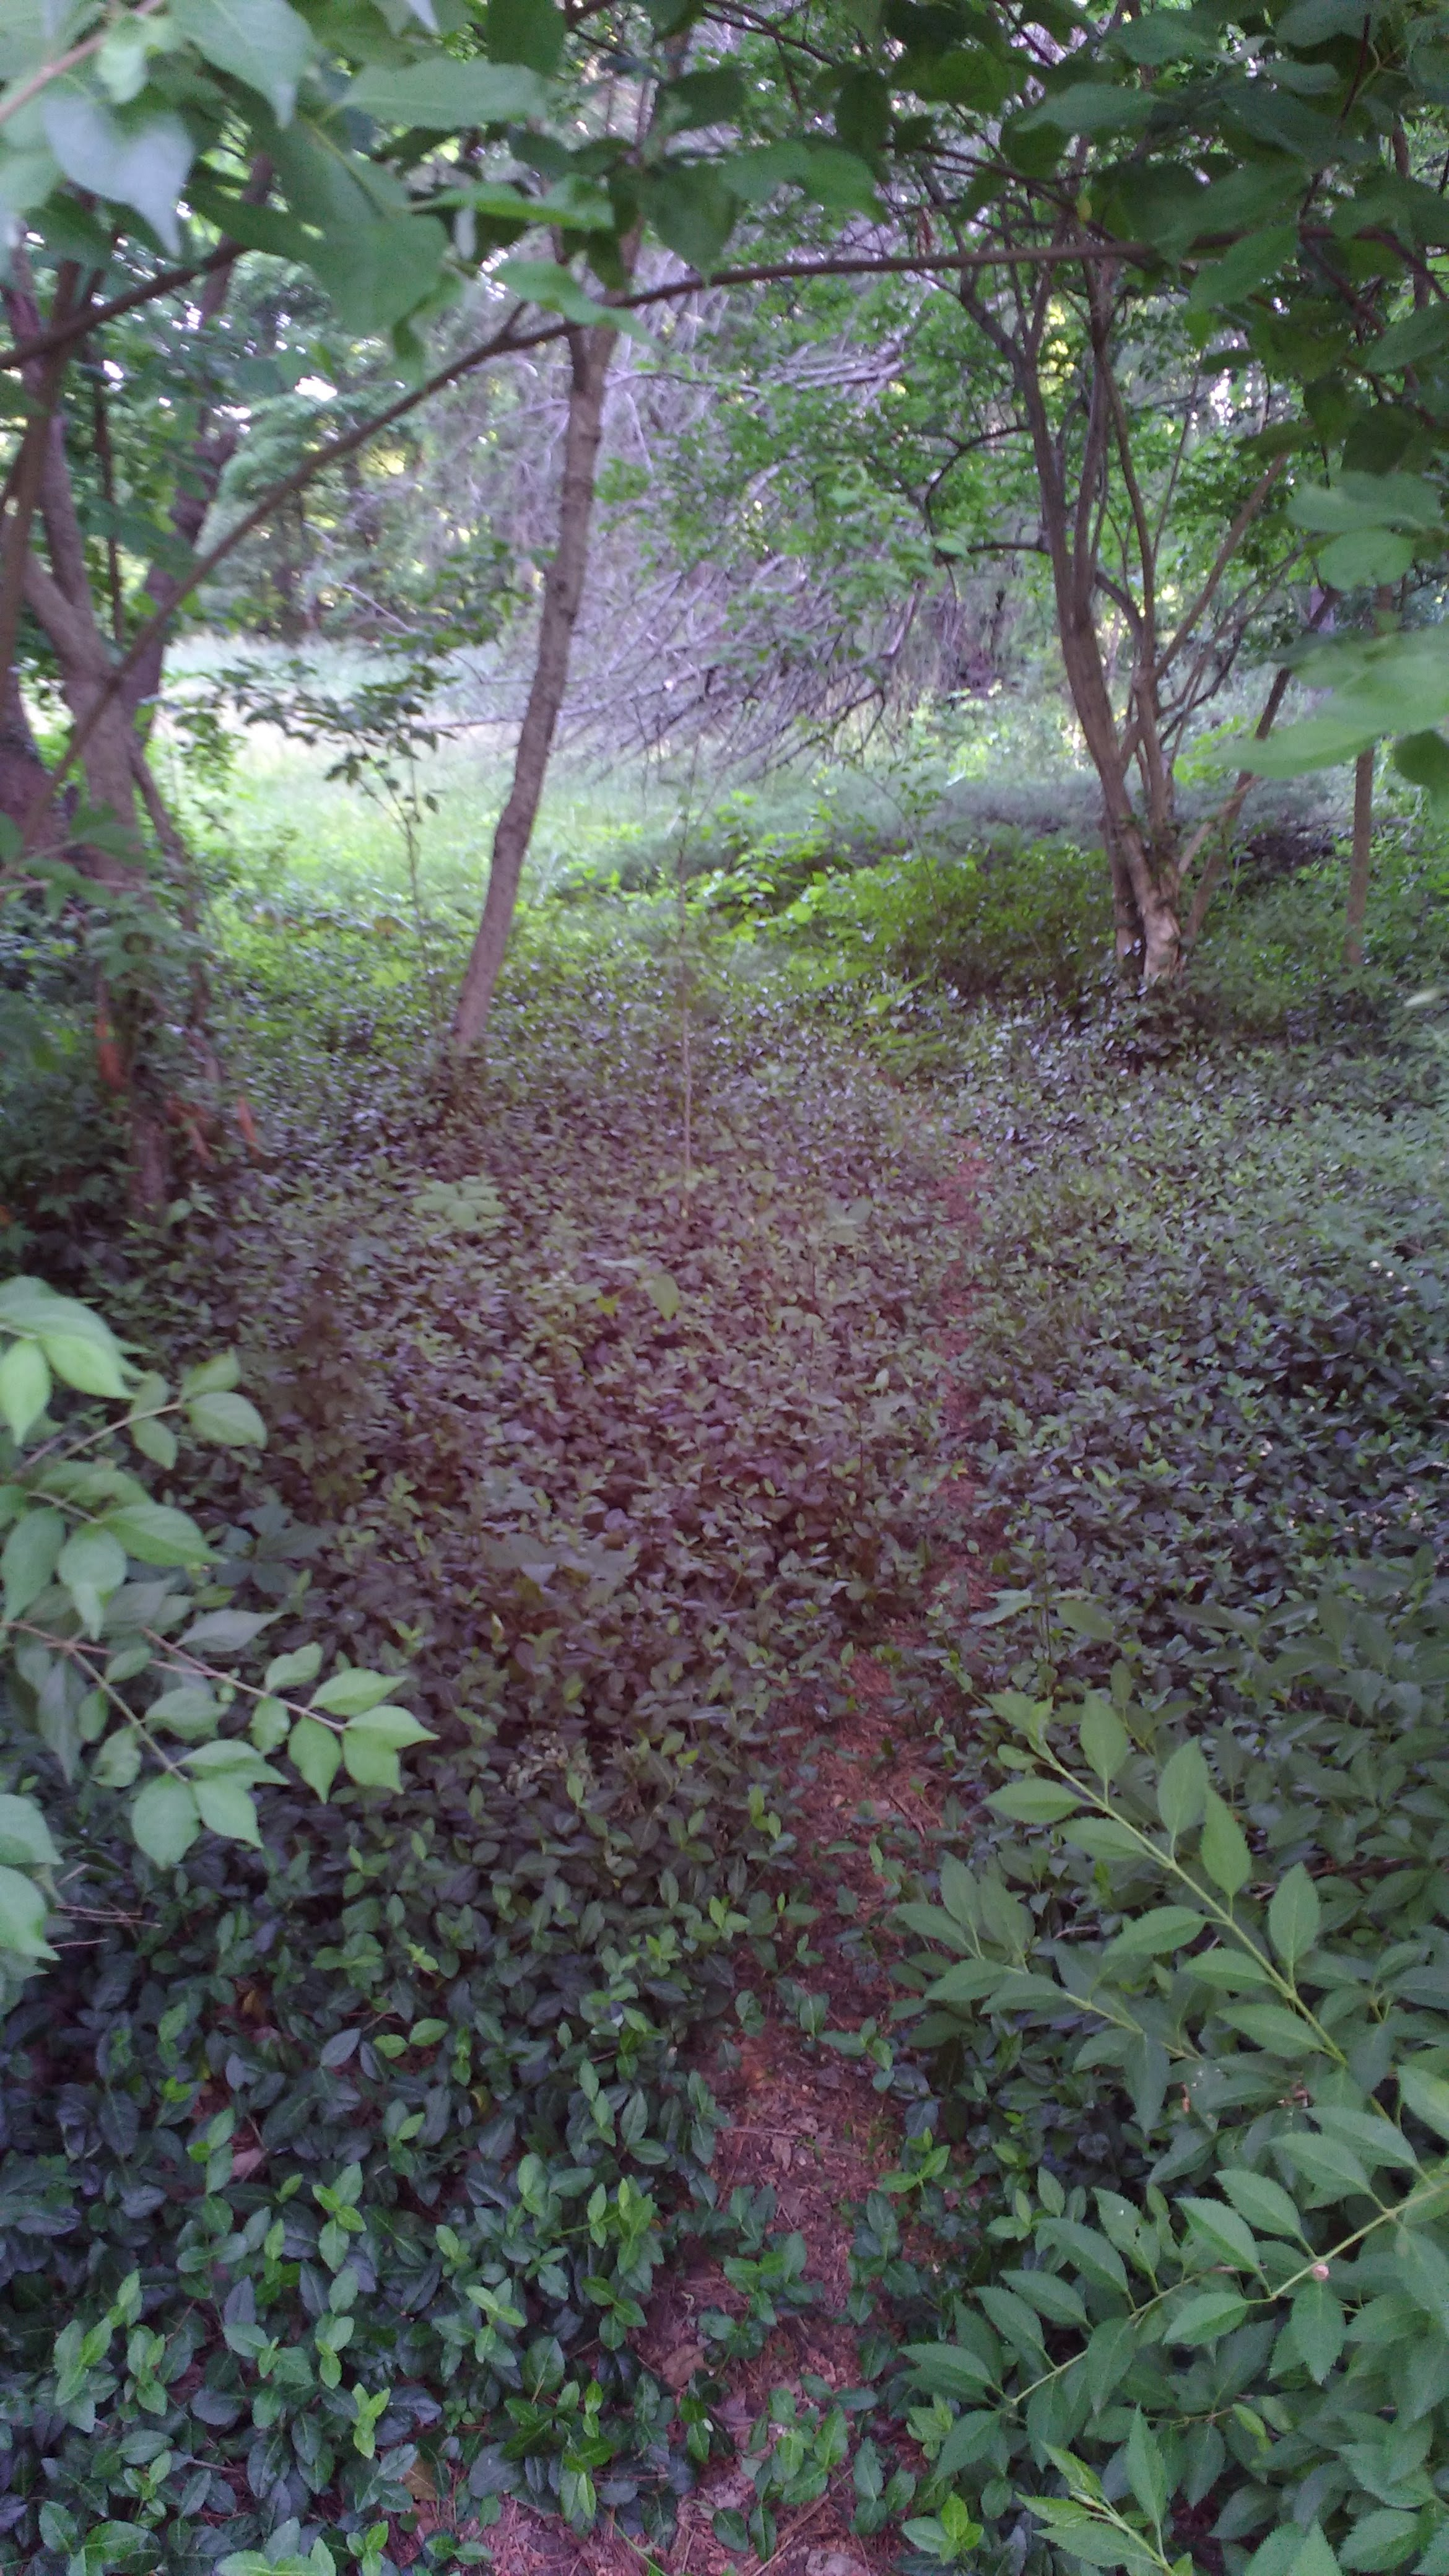 foliage-covered path leading into woody area